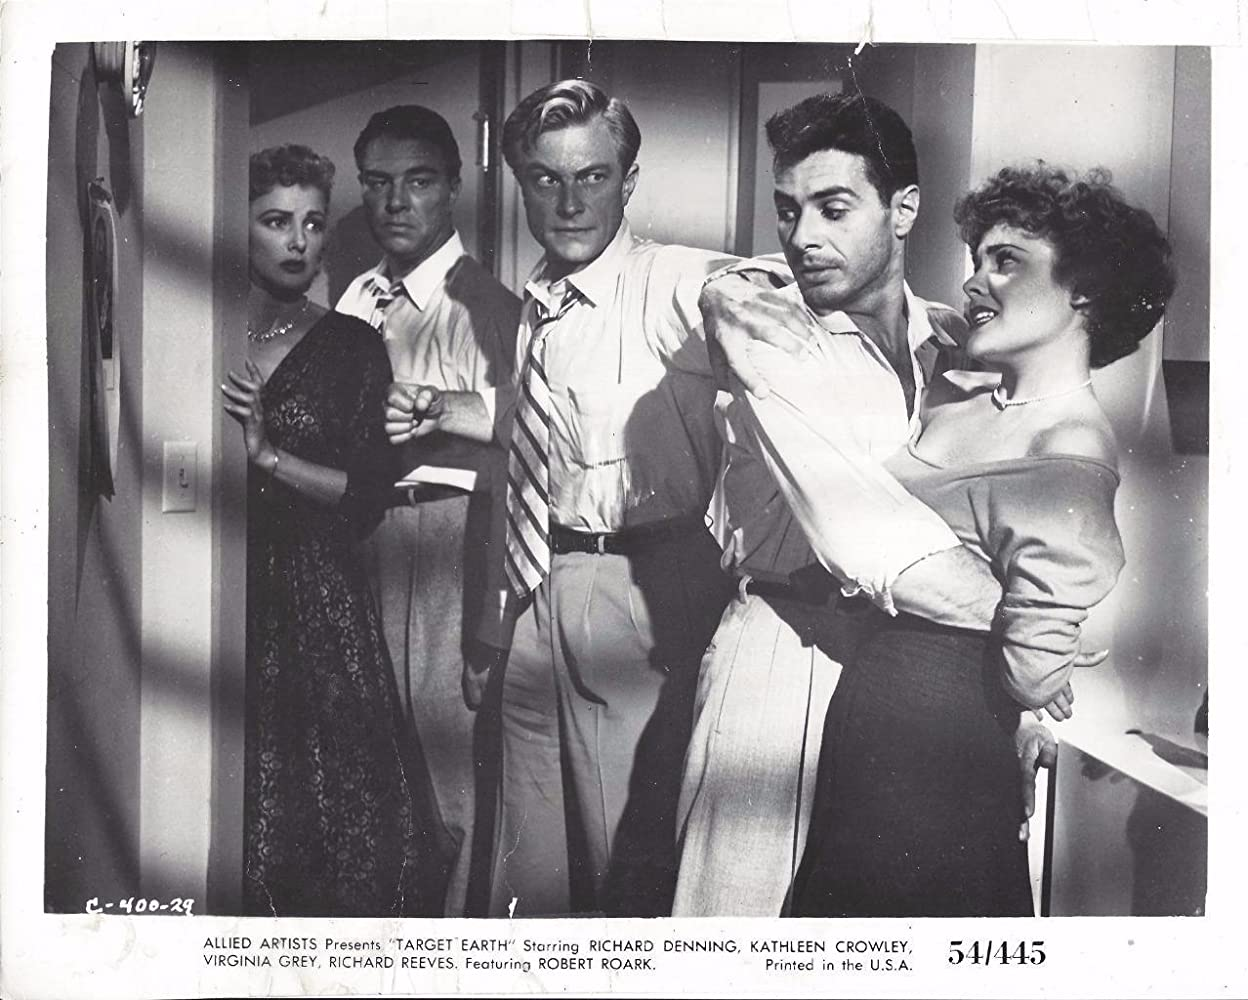 Kathleen Crowley, Richard Denning, Virginia Grey, Richard Reeves, and Robert Roark in Target Earth (1954)